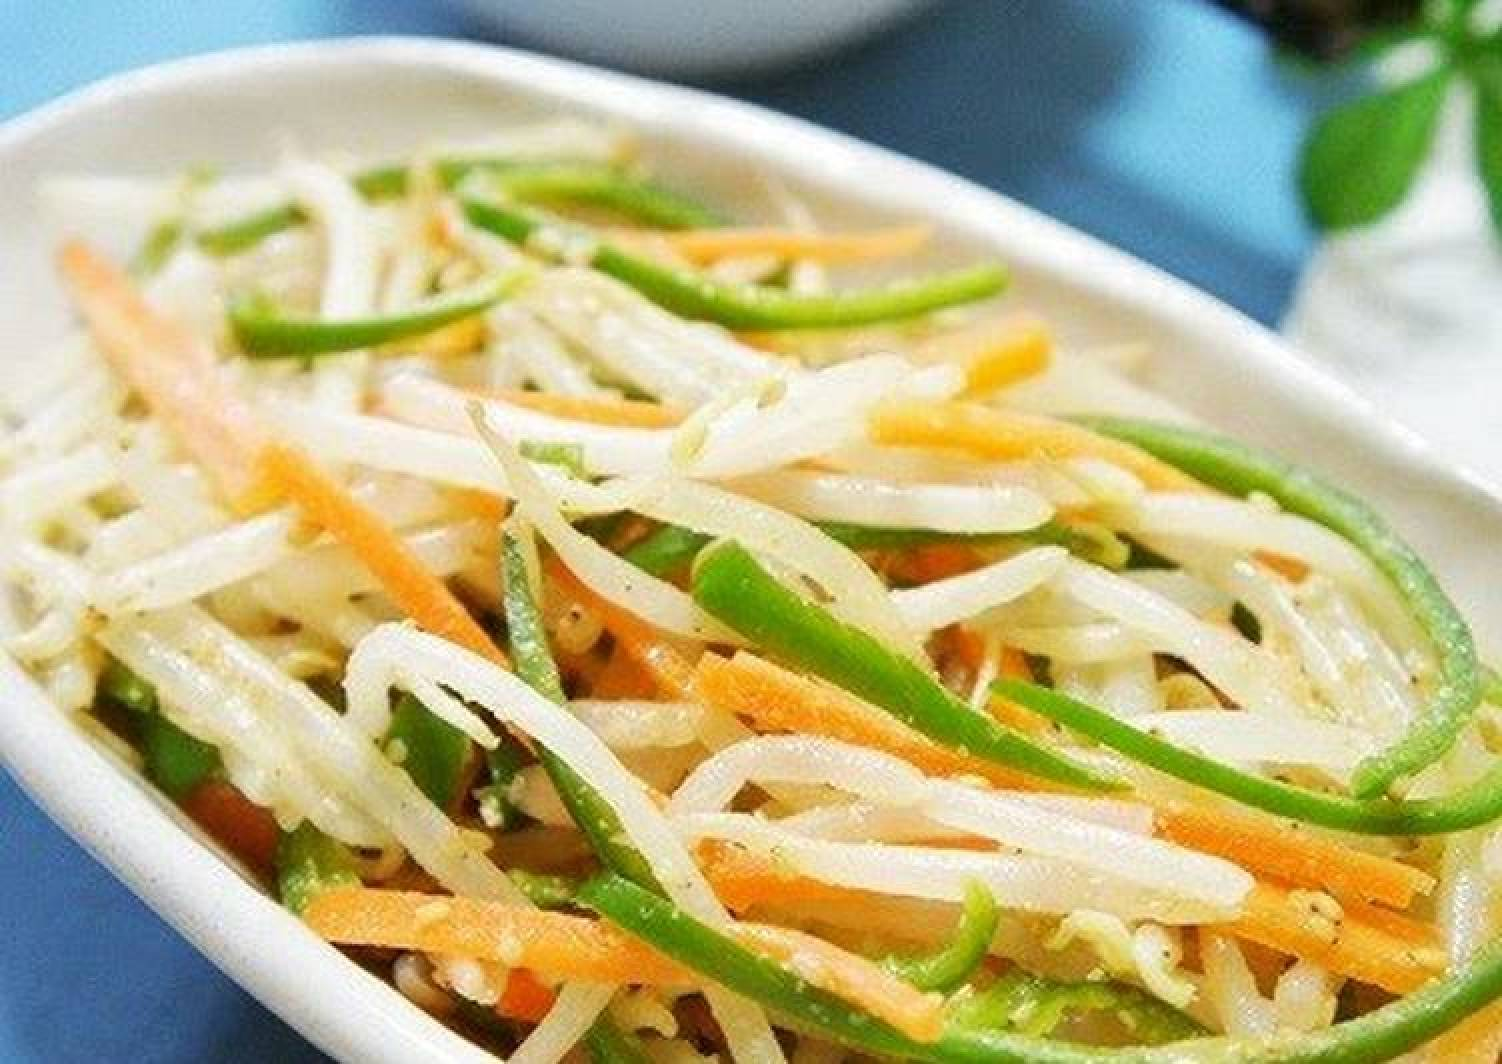 Bean Sprouts, Peppers, and Carrot Namul (Korean-Style Salad)